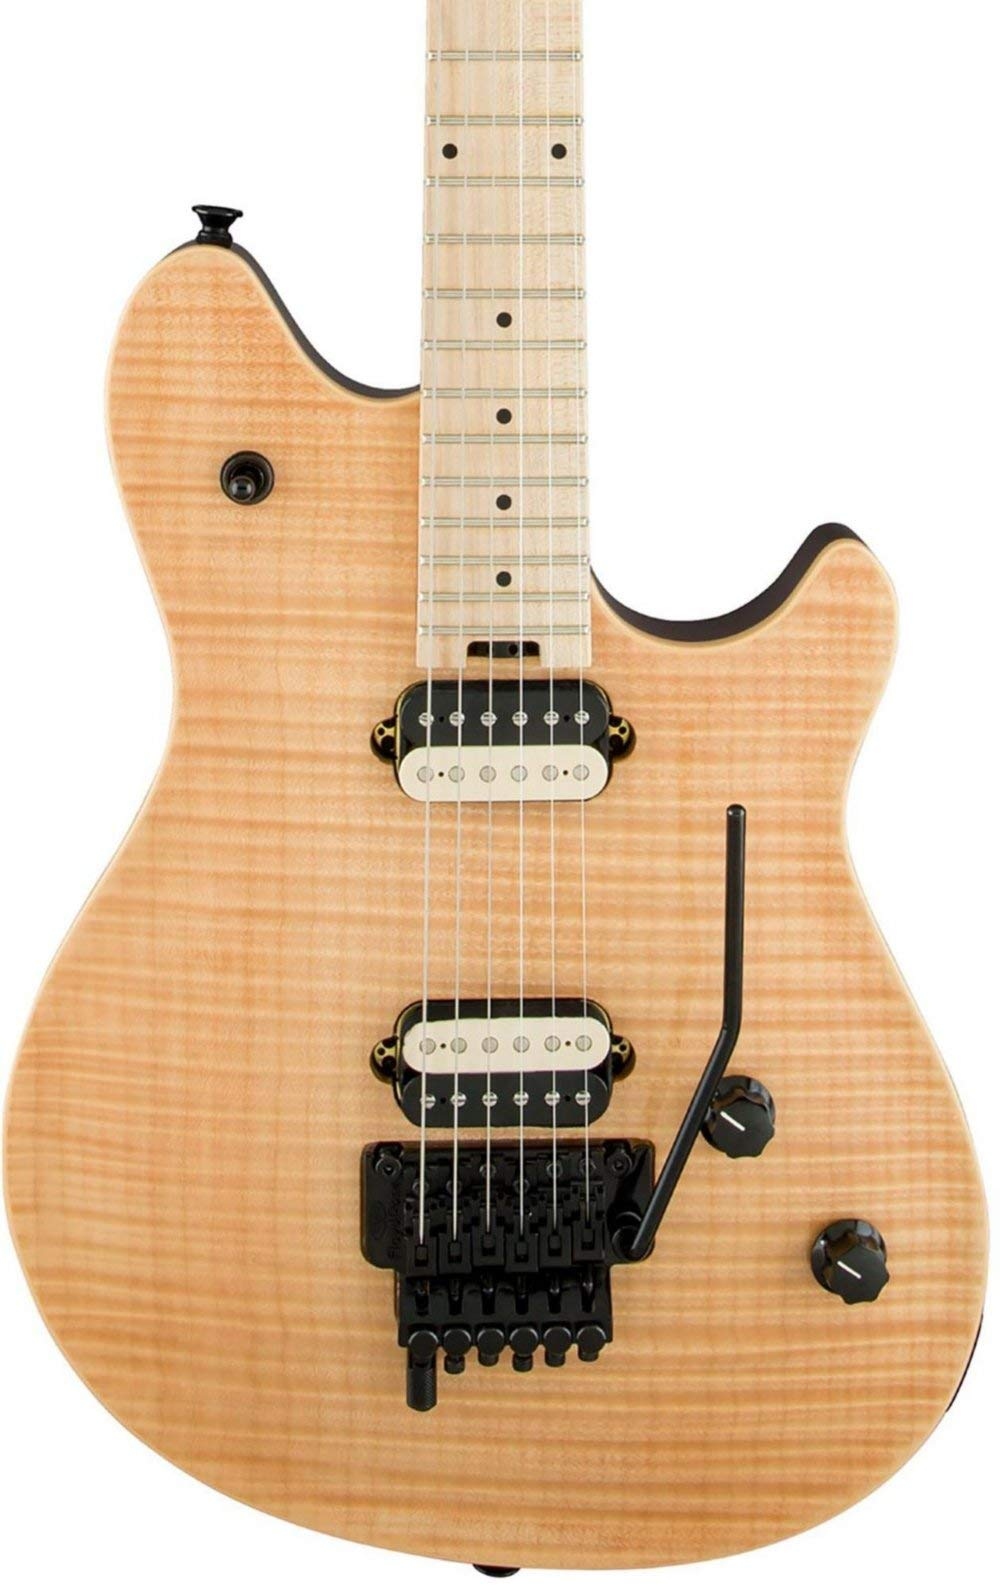 Cheap Wolfgang Special FM Electric Guitar w/ Floyd Rose - El Natural Black Friday & Cyber Monday 2019